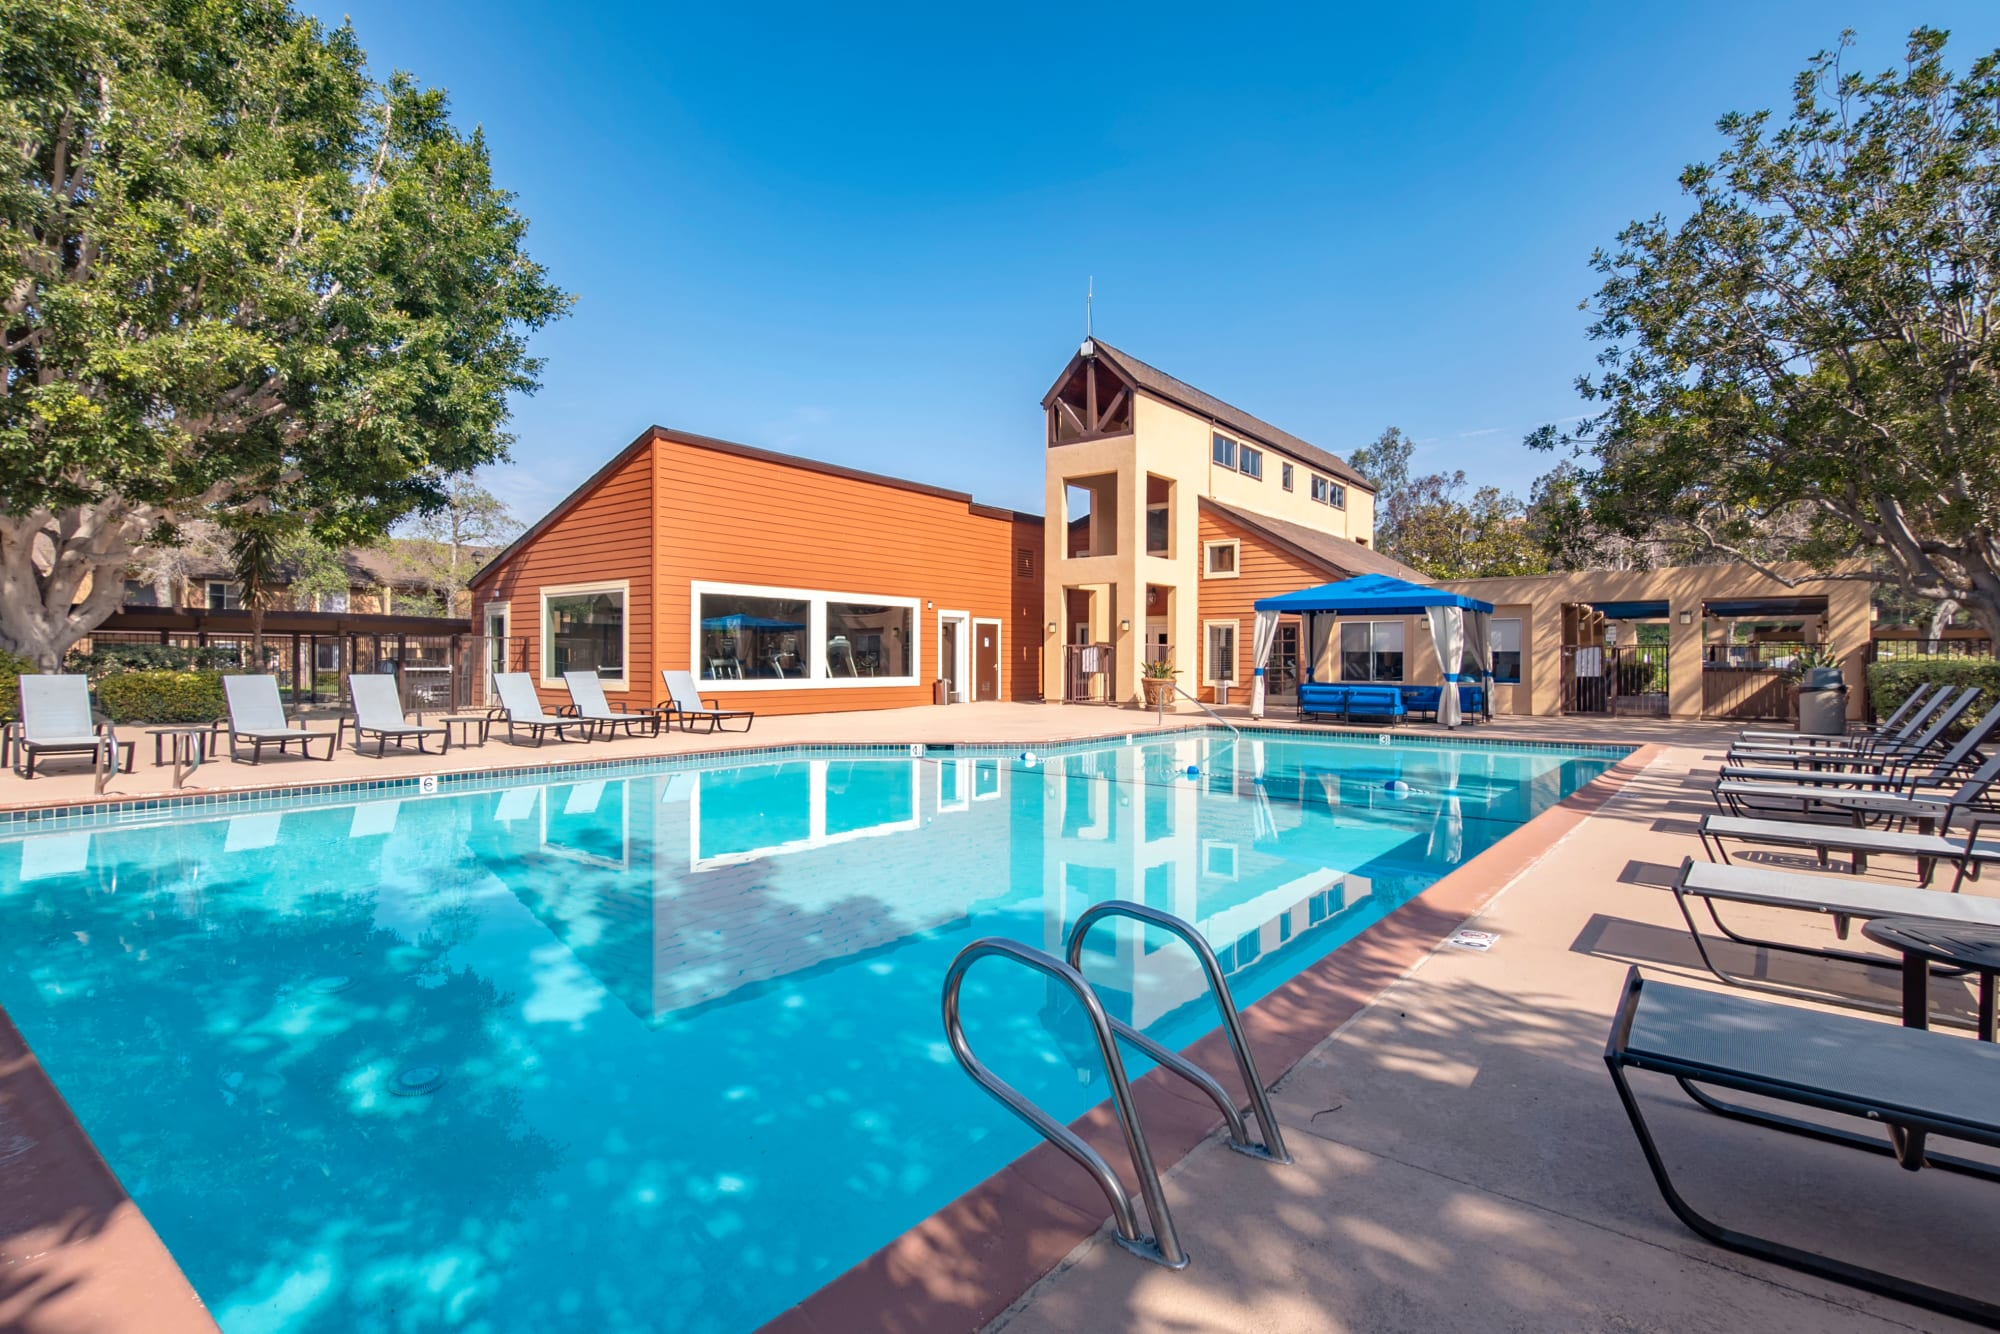 Swimming Pool and Deck with lounge chairs and umbrellas at Terra Nova Villas in Chula Vista, CA